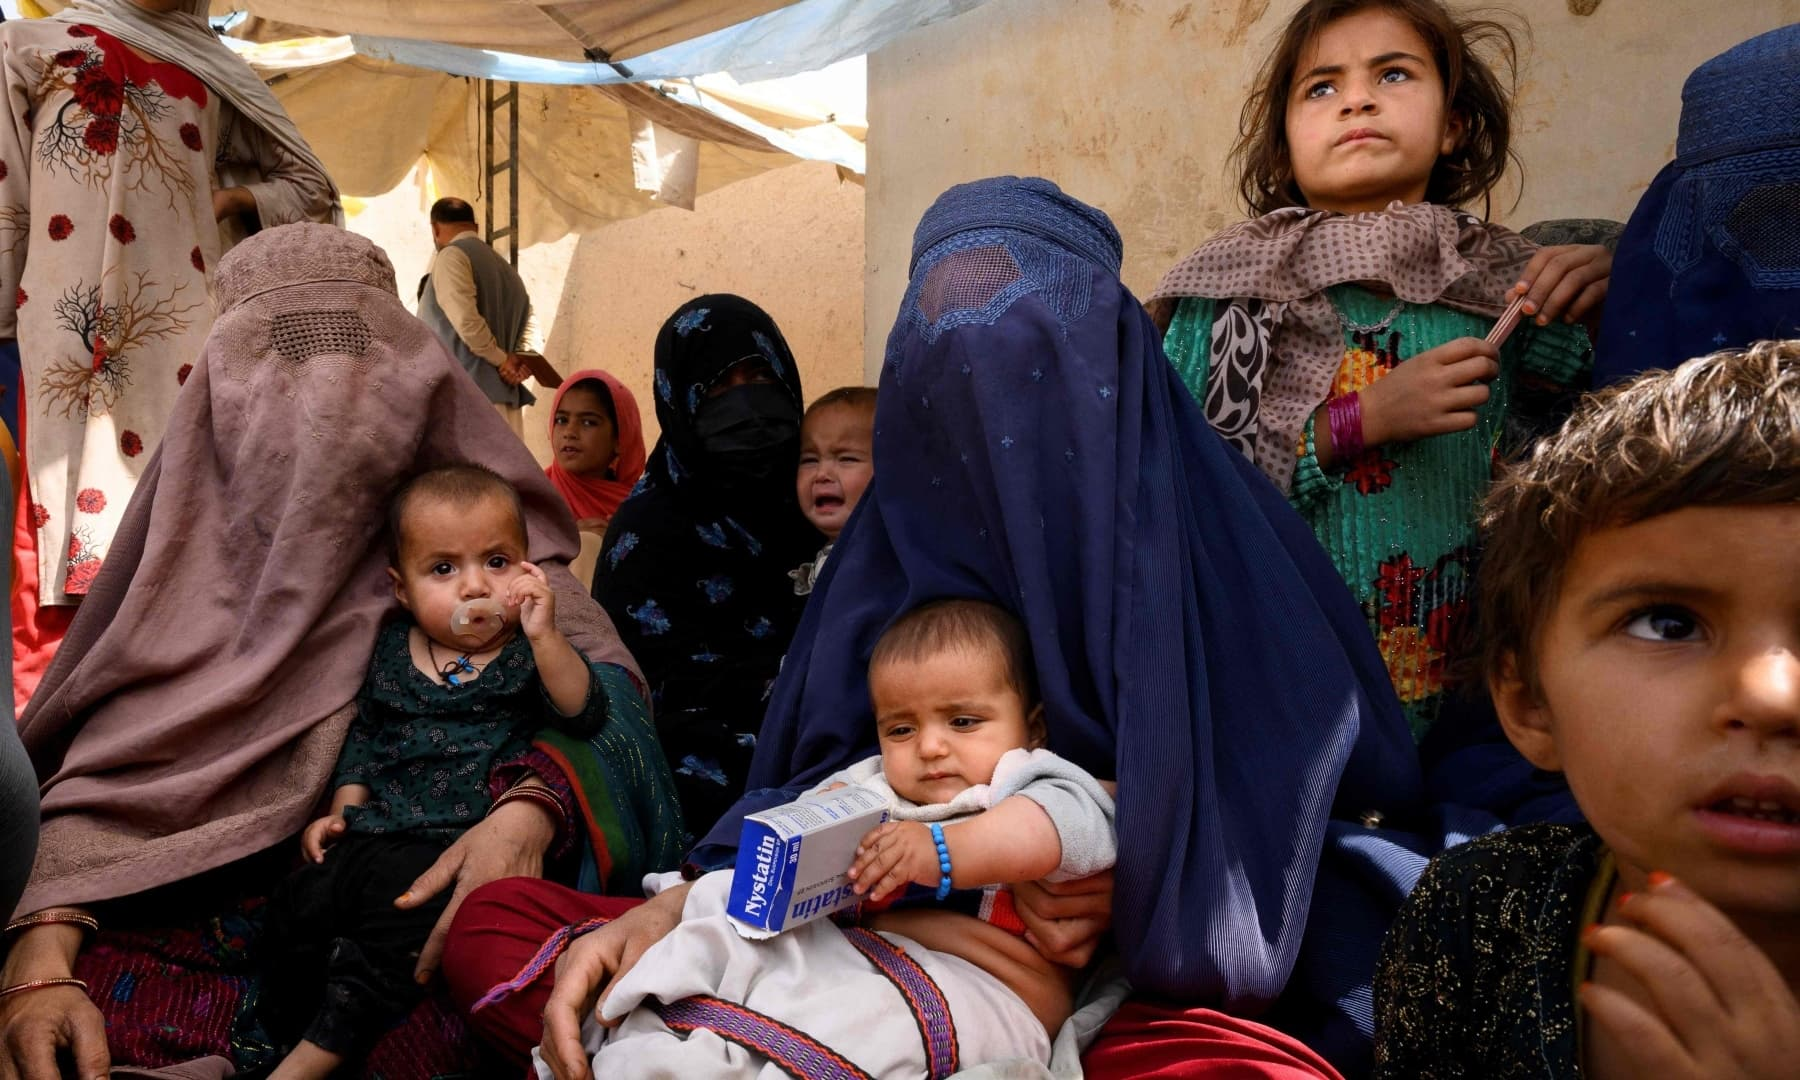 Women wait for their turn at a mobile clinic for women and children set up at the residence of a local elder in Yarmuhamad village, near Lashkar Gah in Helmand province, Afghanistan, March 28, 2021. — AFP/File